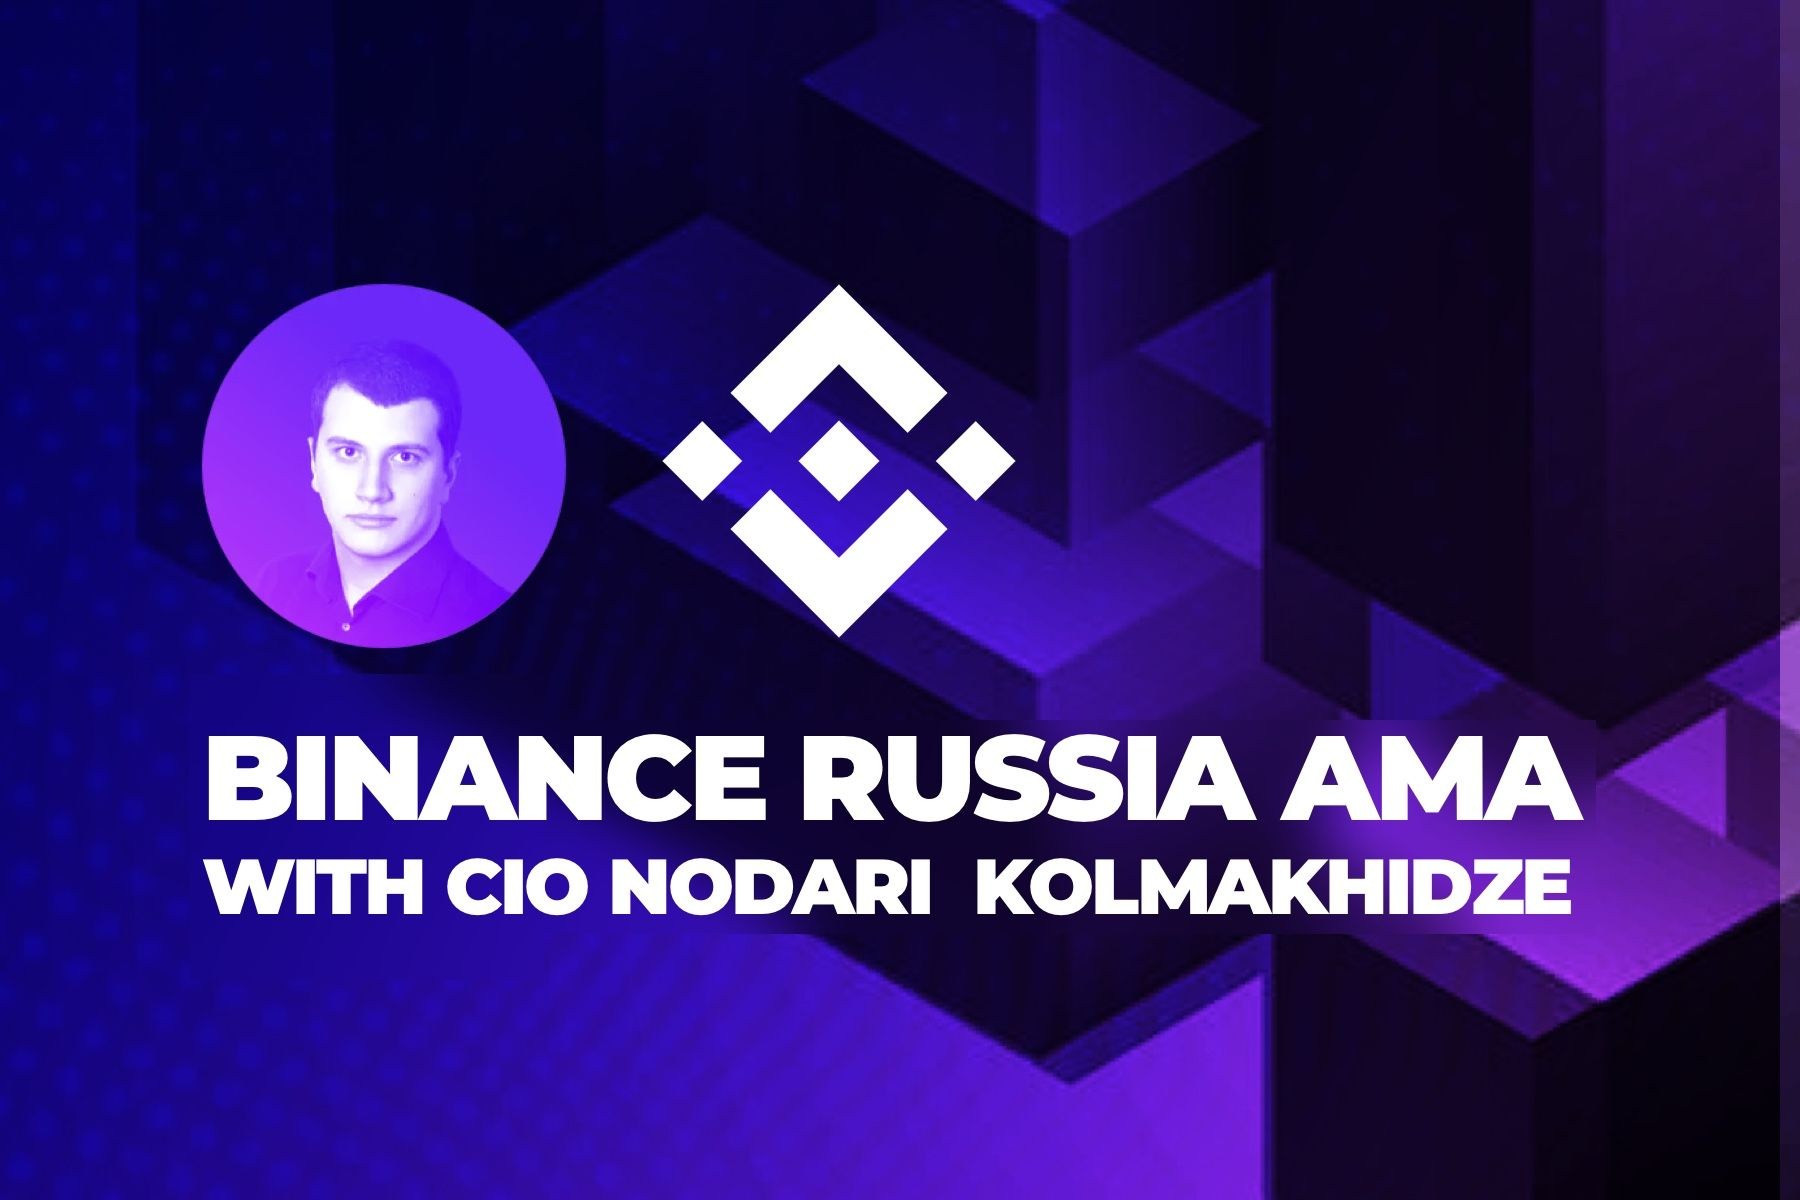 Binance Russia AMA with Cindicator CIO Nodari Kolmakhidze